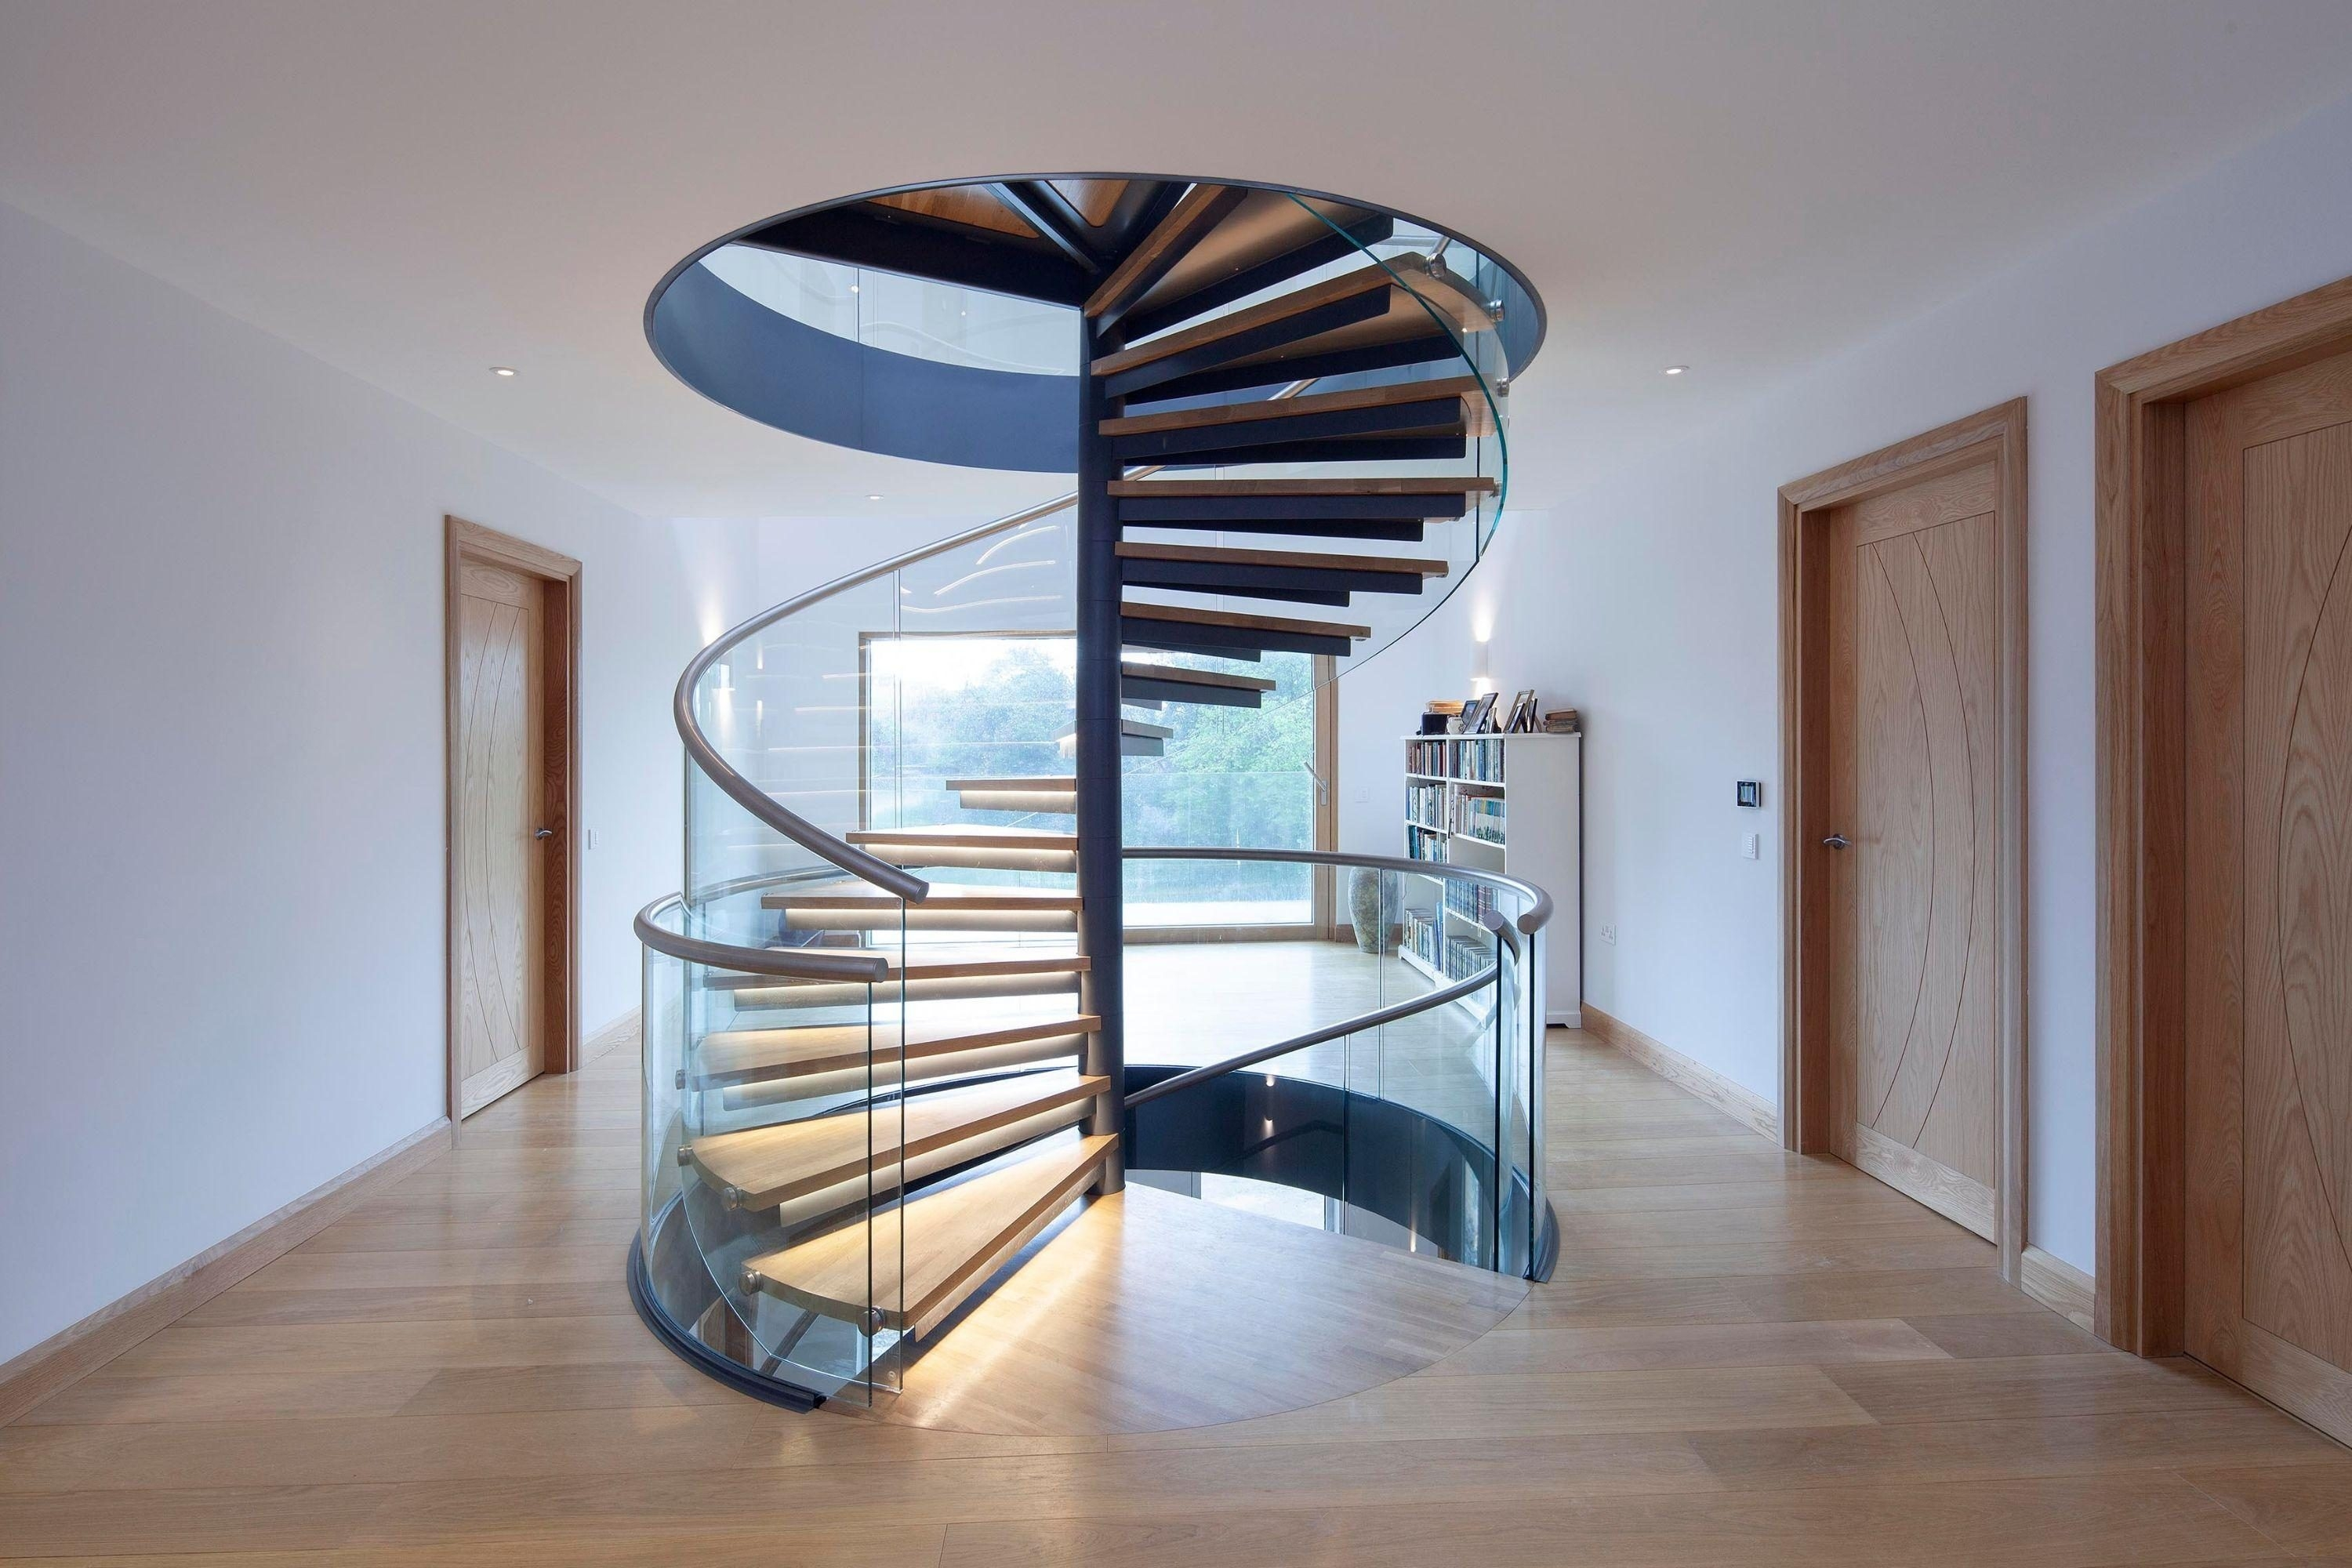 Regulations For Residential Staircases Spiral Uk | Spiral Staircase Into Loft | Loft Conversion | Small Spaces | Tiny House | Space Saving | Staircase Design